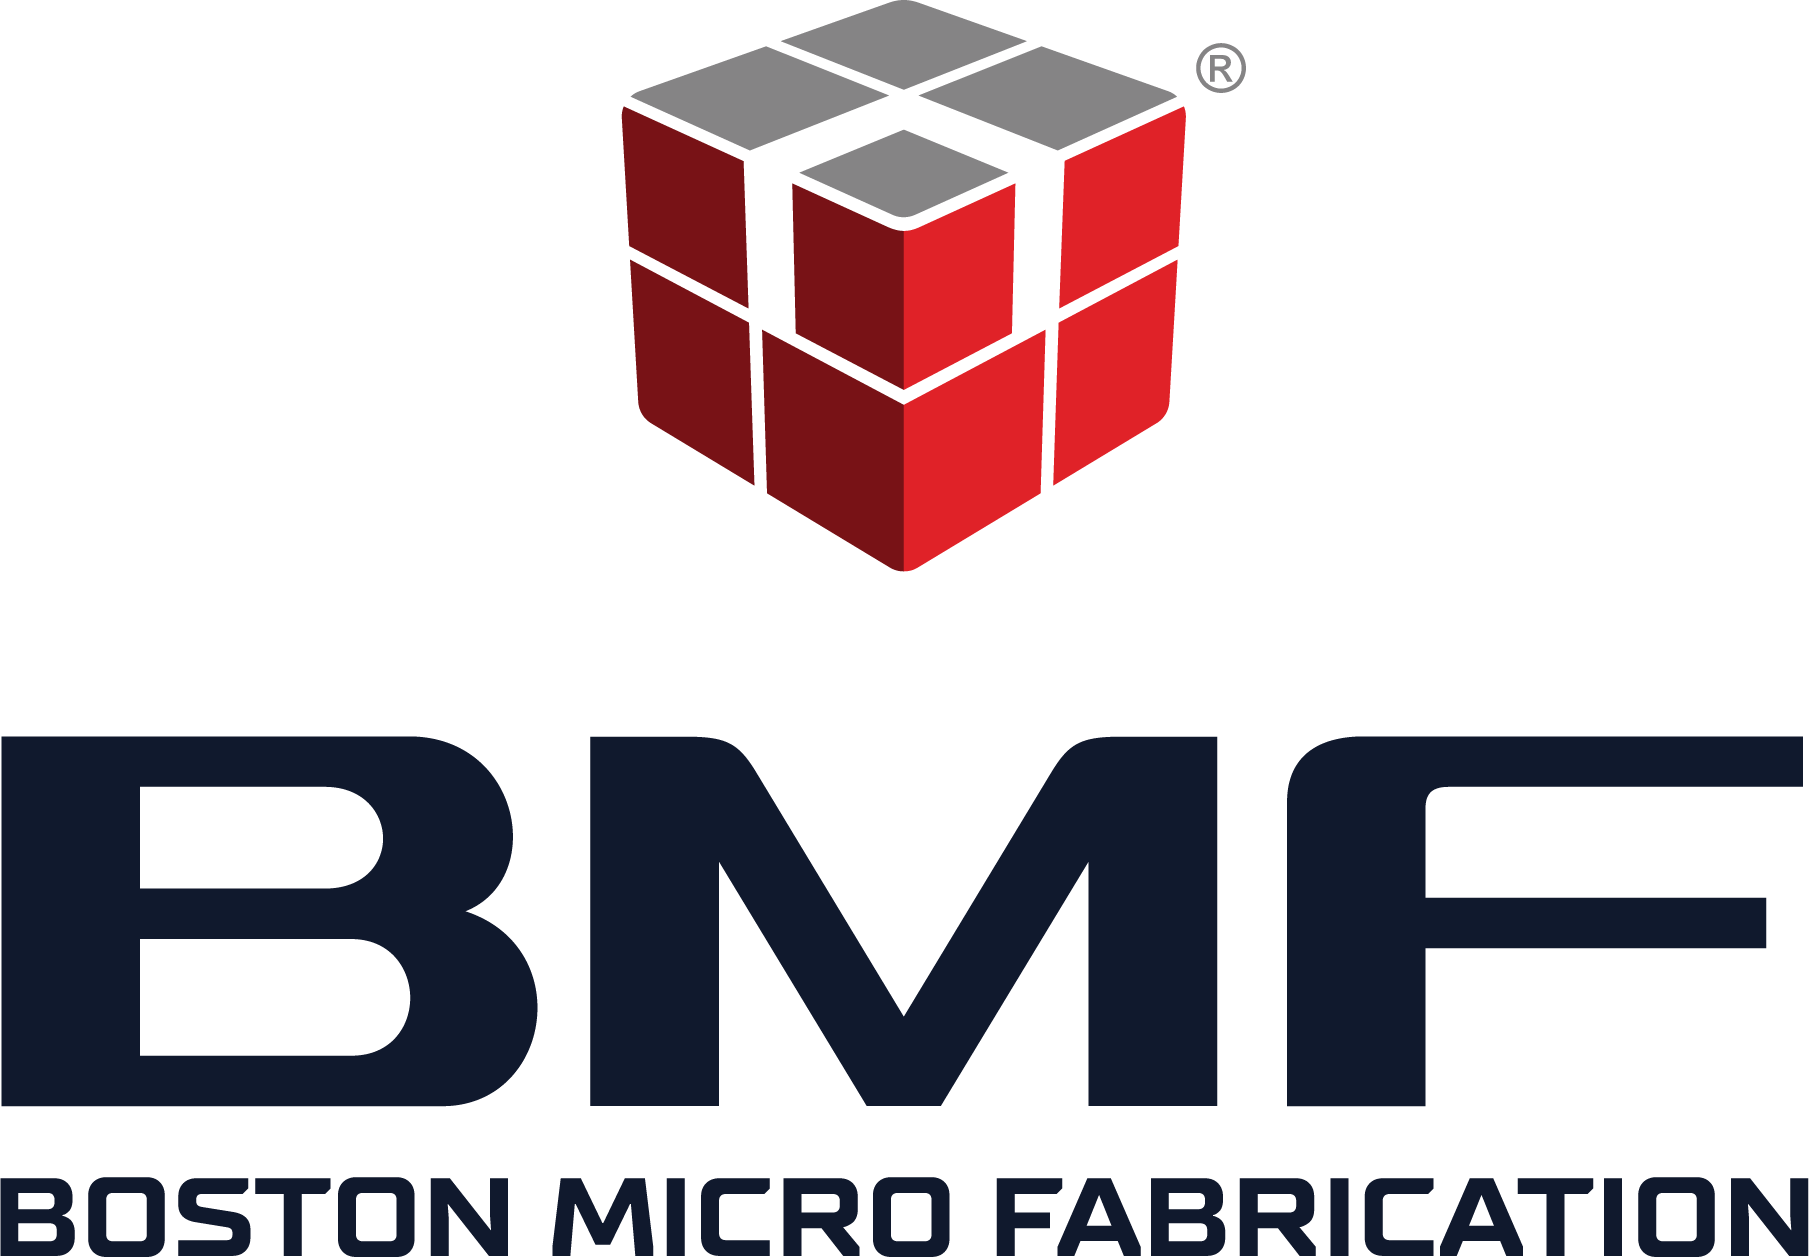 Boston Micro Fabrication 3D